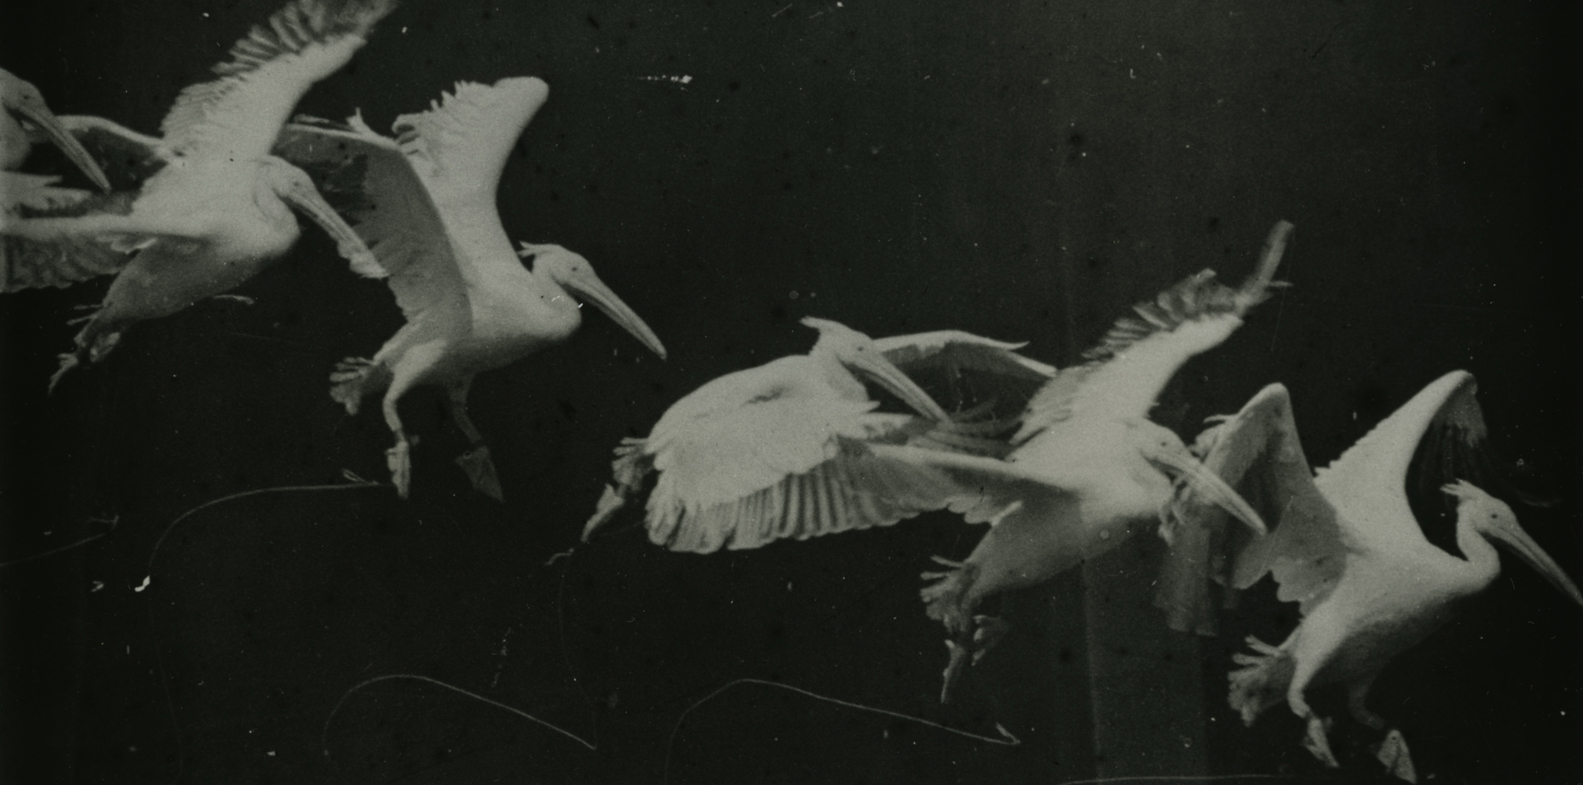 Photo of flying pelican taken by Étienne-Jules Marey, c.1882, Wikimedia commons images, accessed 5 June 2020